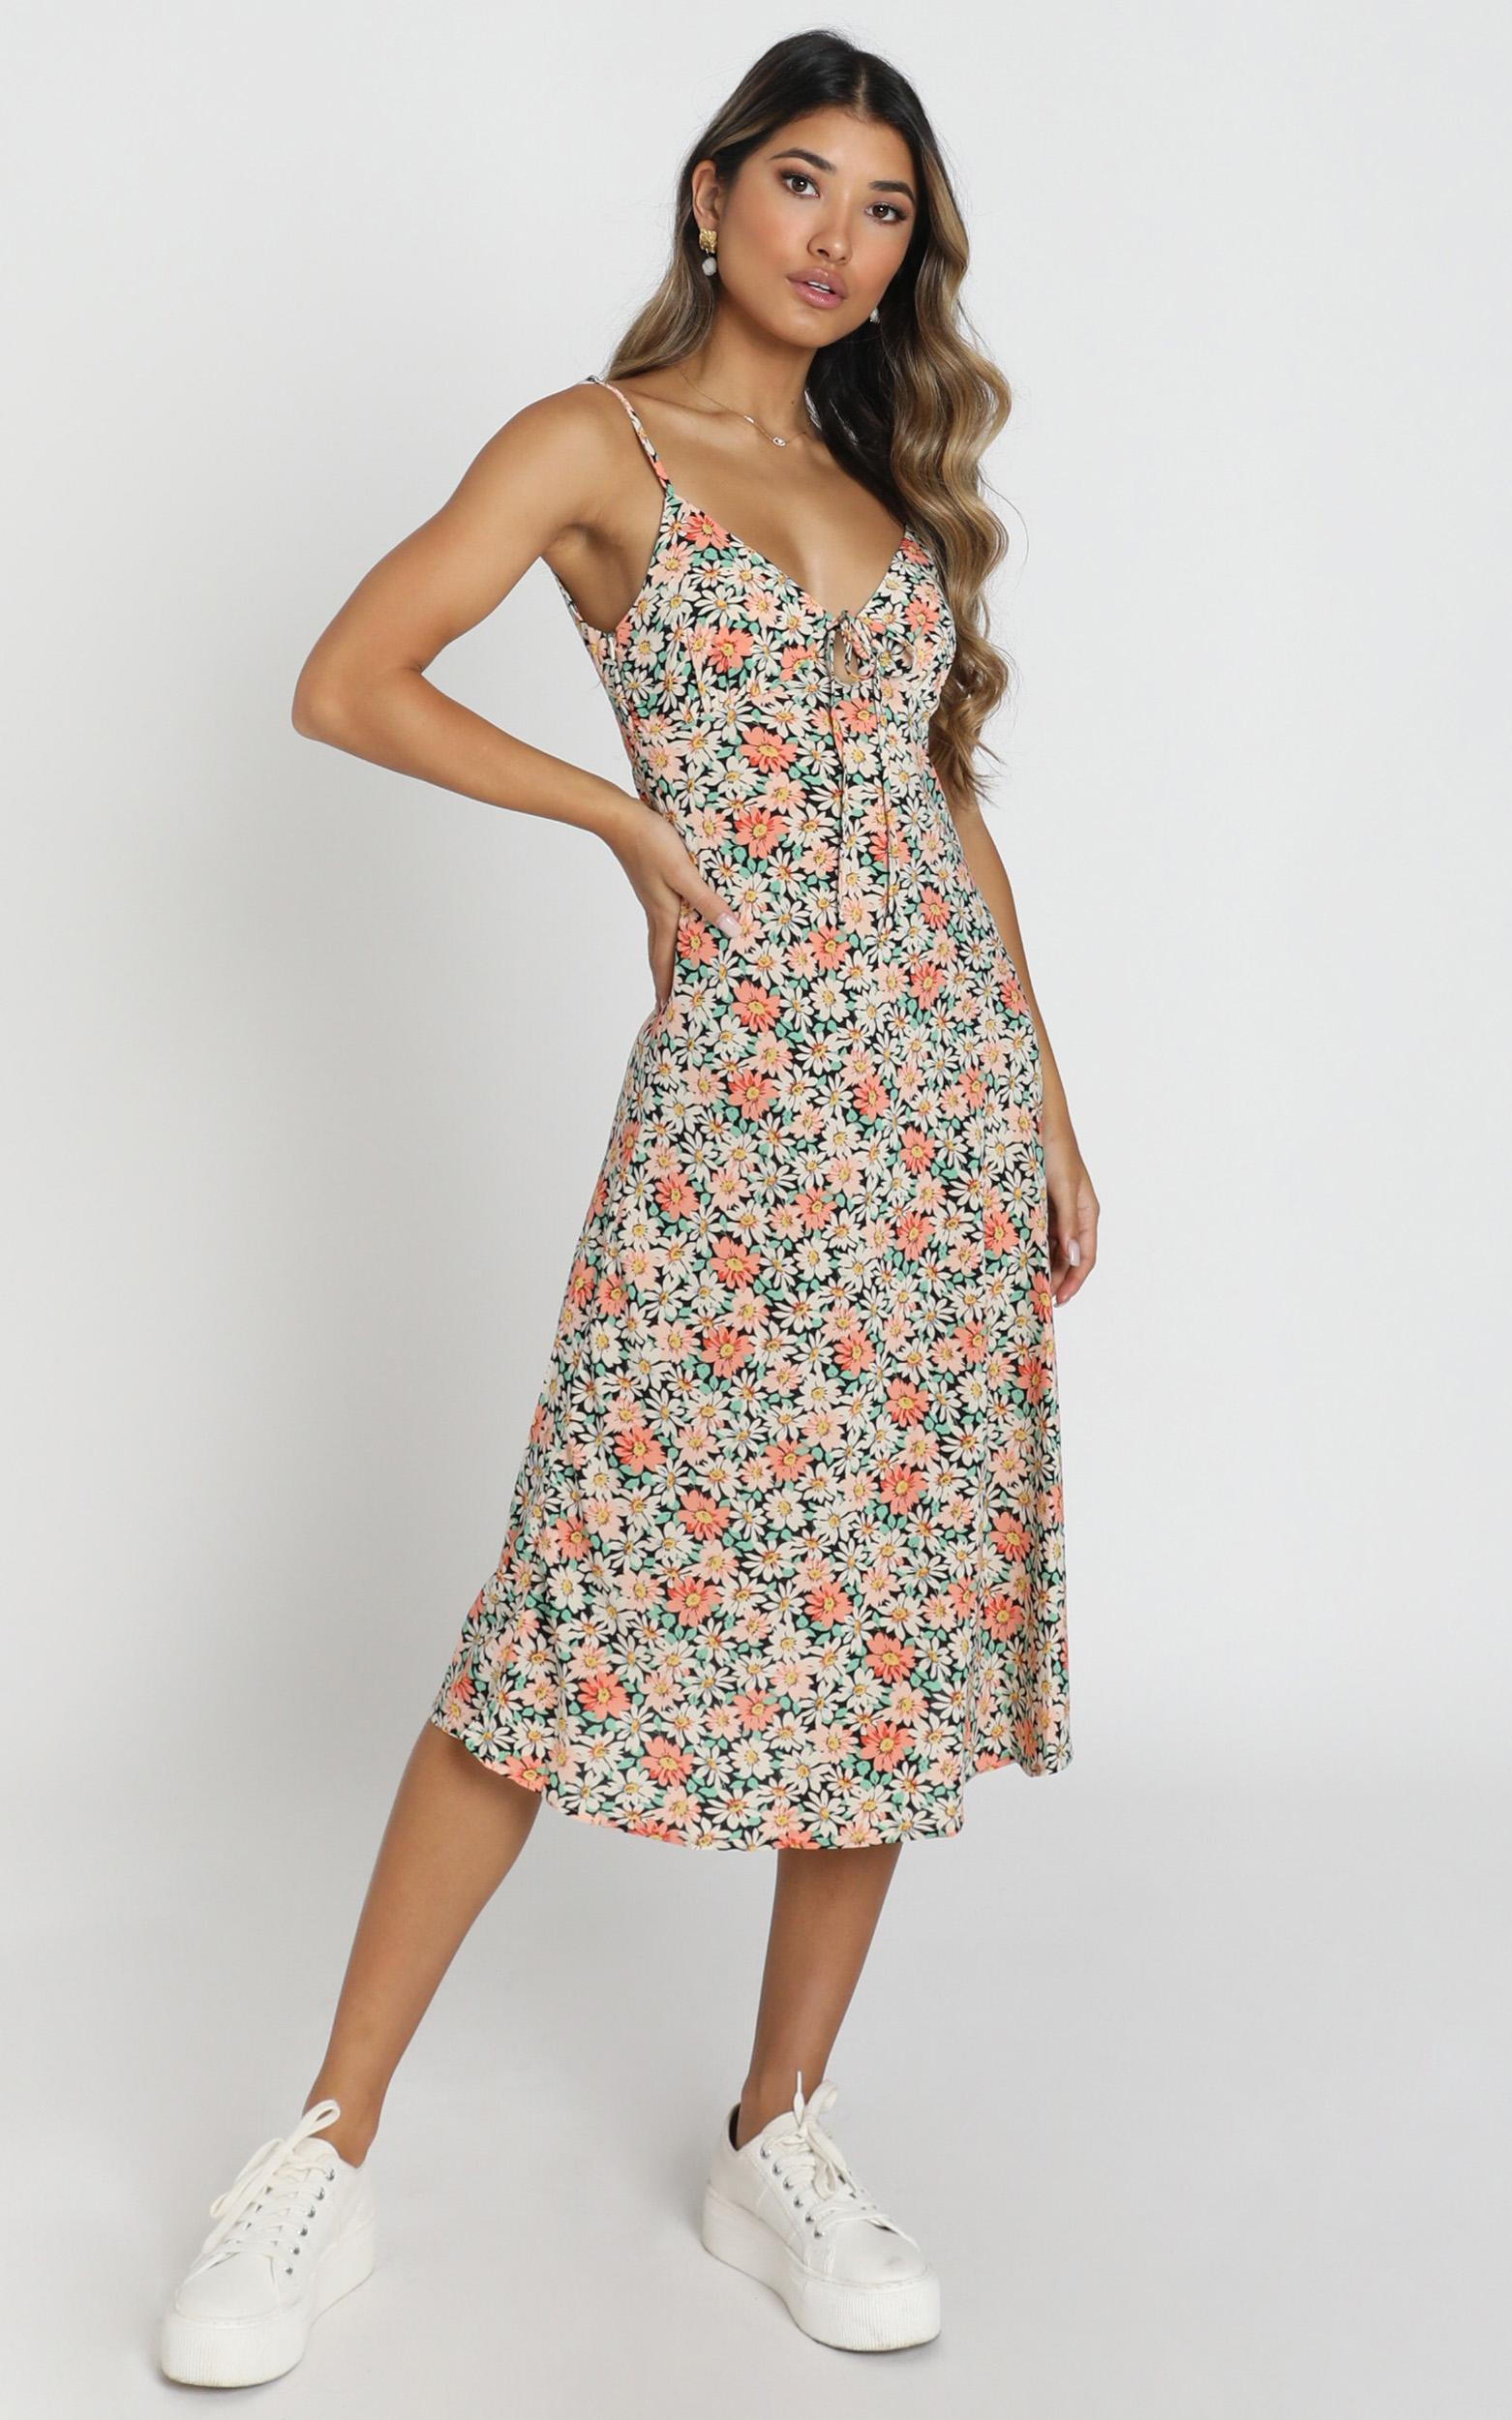 Toss The Dice Dress In Black Floral - 16 (XXL), BLK1, hi-res image number null